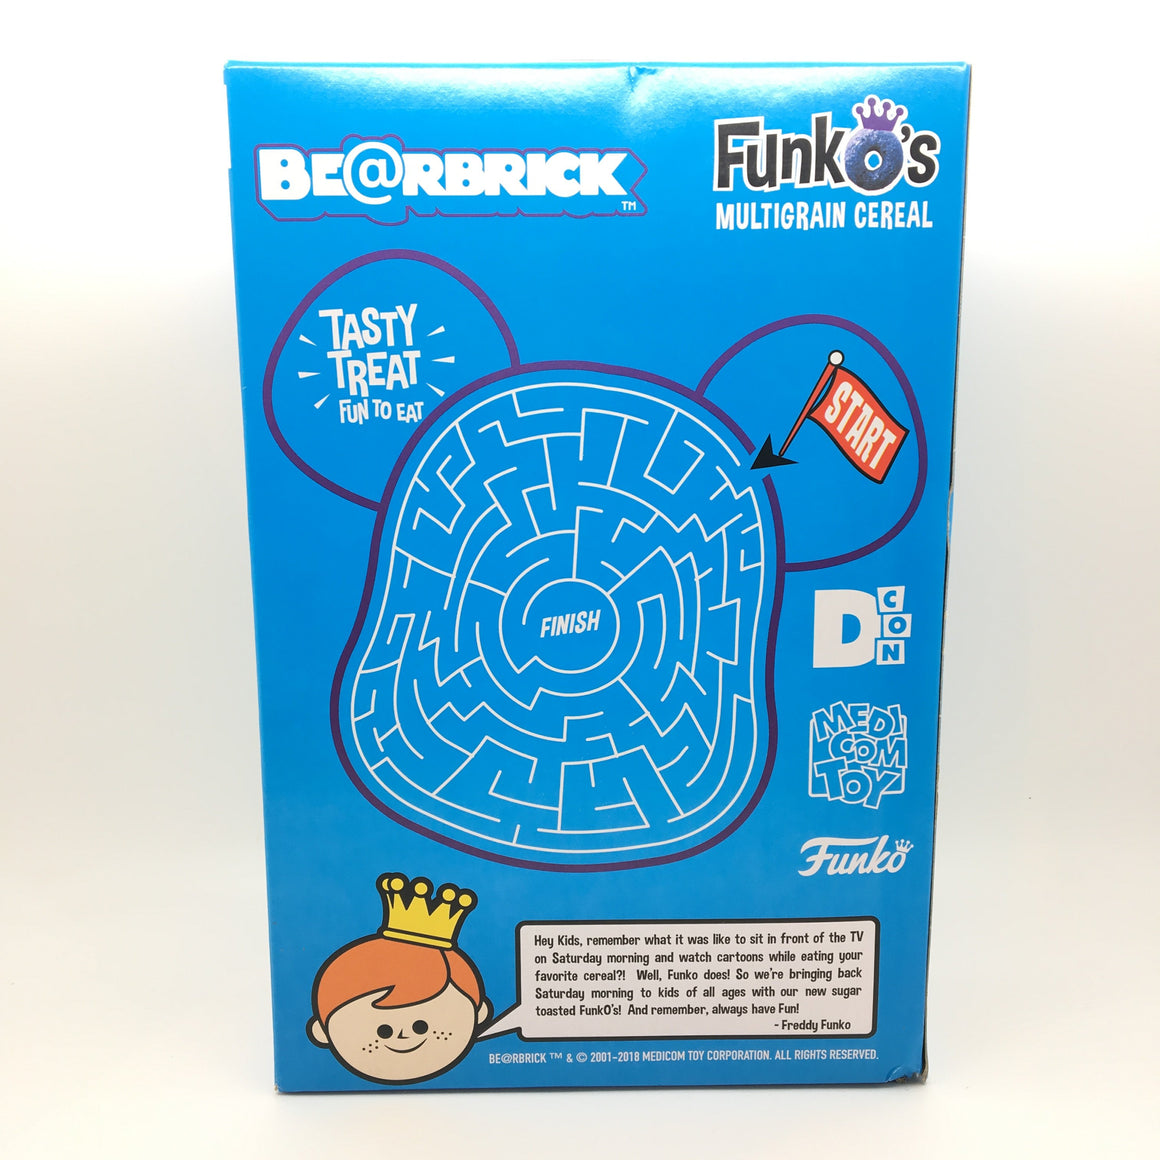 Bearbrick Funko's Cereal with 100% Bearbrick Figure Designer Con ( DCON ) Exclusive - Blue Box